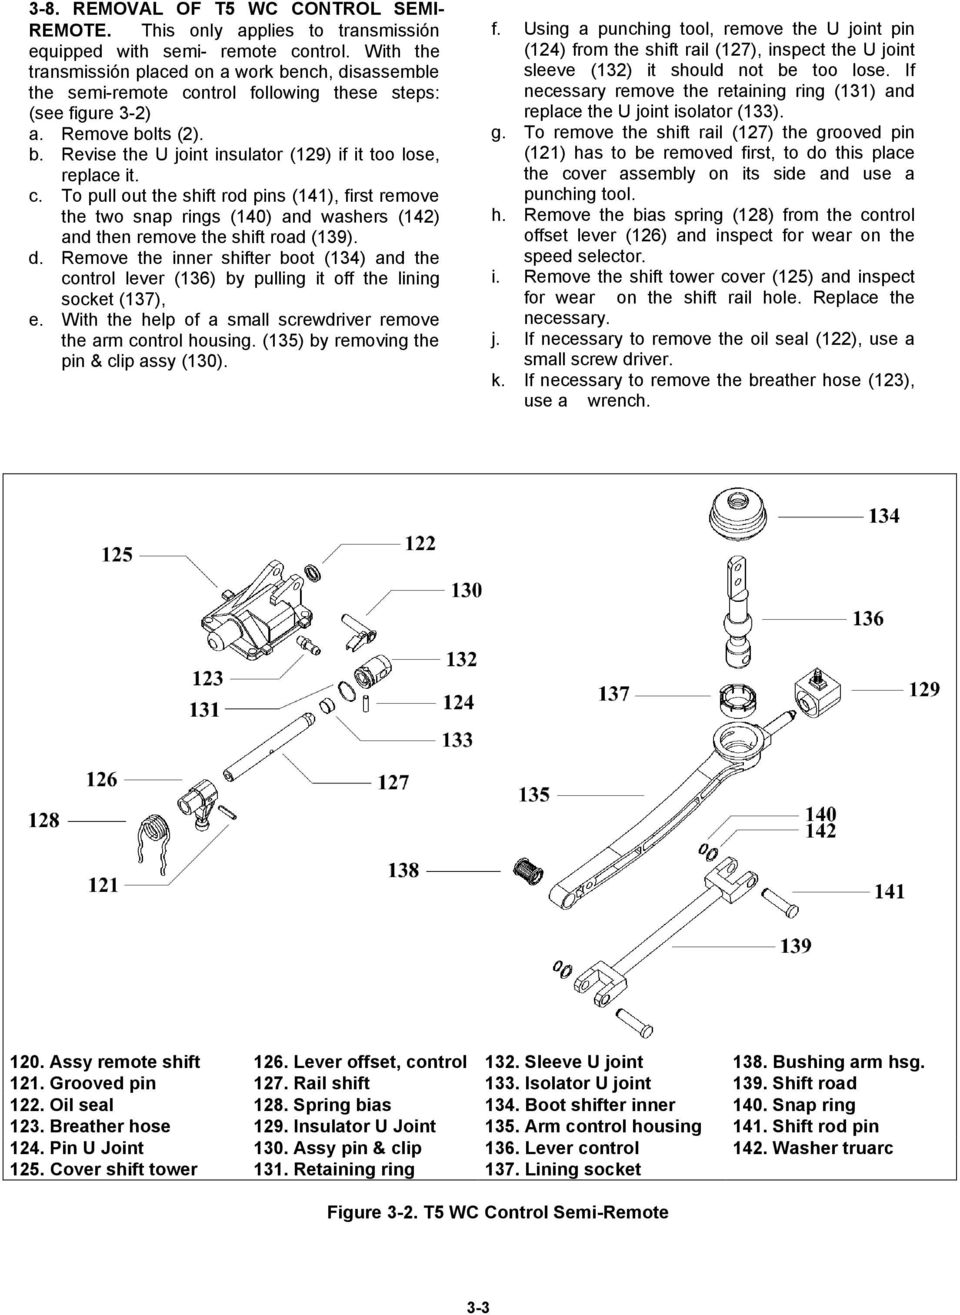 c. To pull out the shift rod pins (4), first remove the two snap rings (40) and washers (42) and then remove the shift road (39). d.